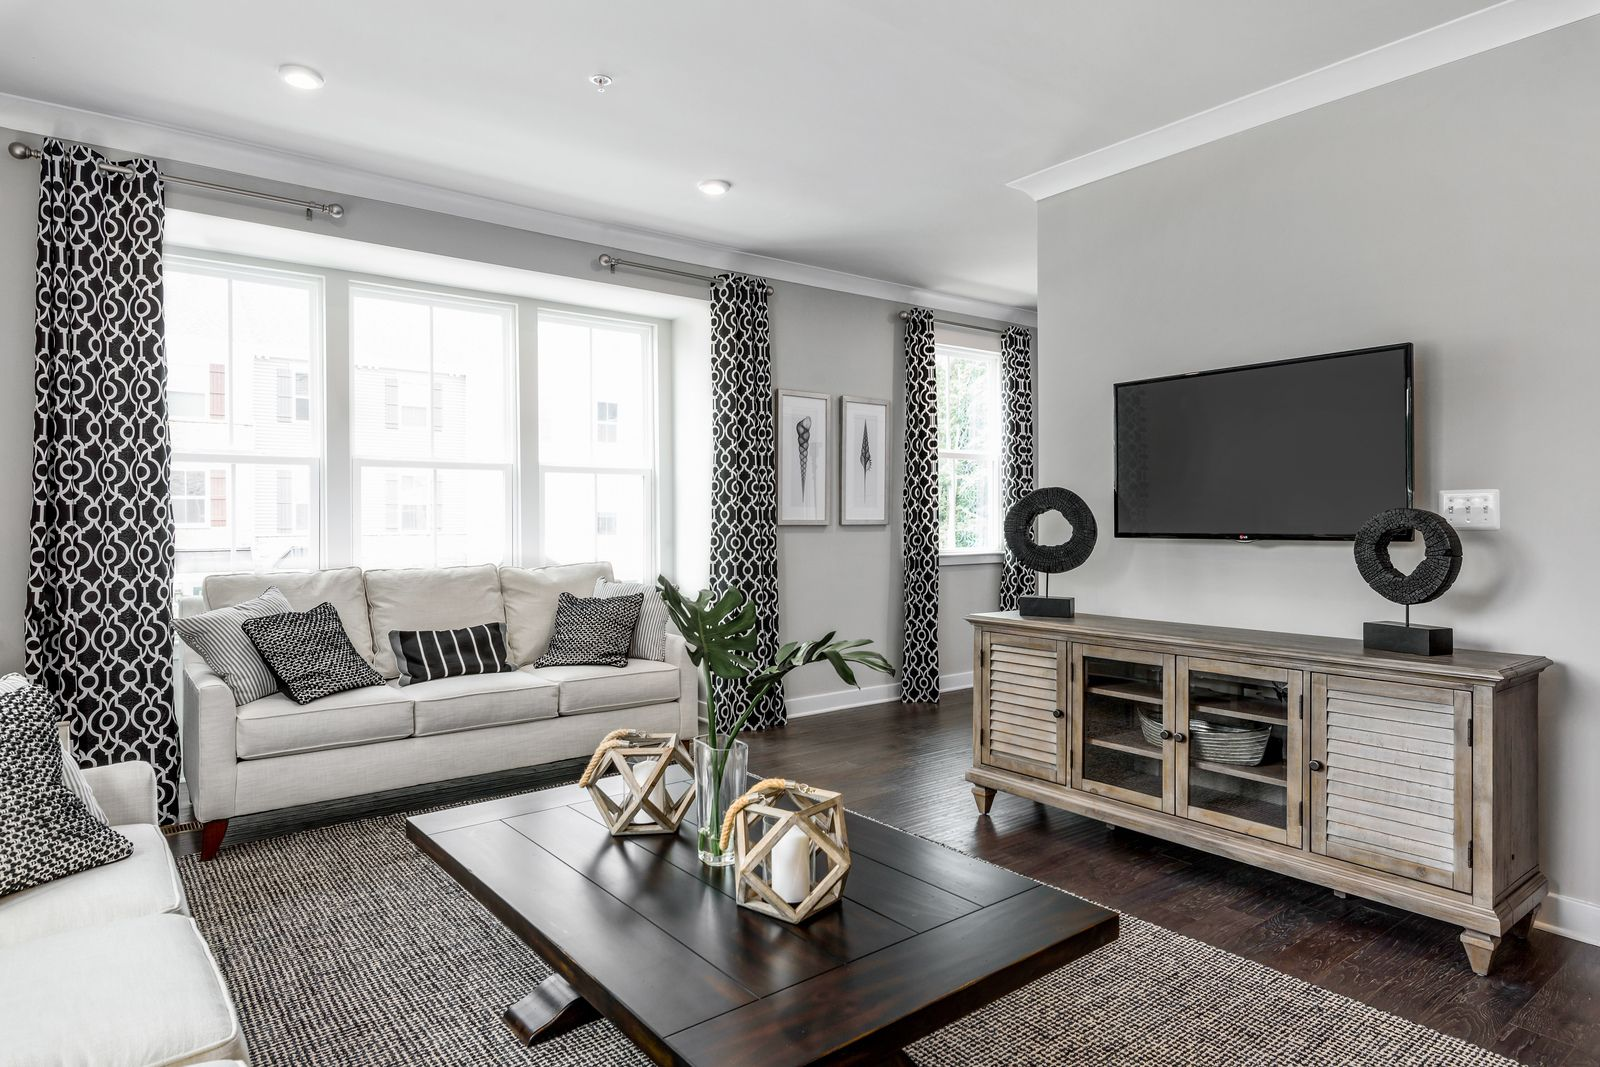 Living Area featured in the Wexford By Ryan Homes in Baltimore, MD